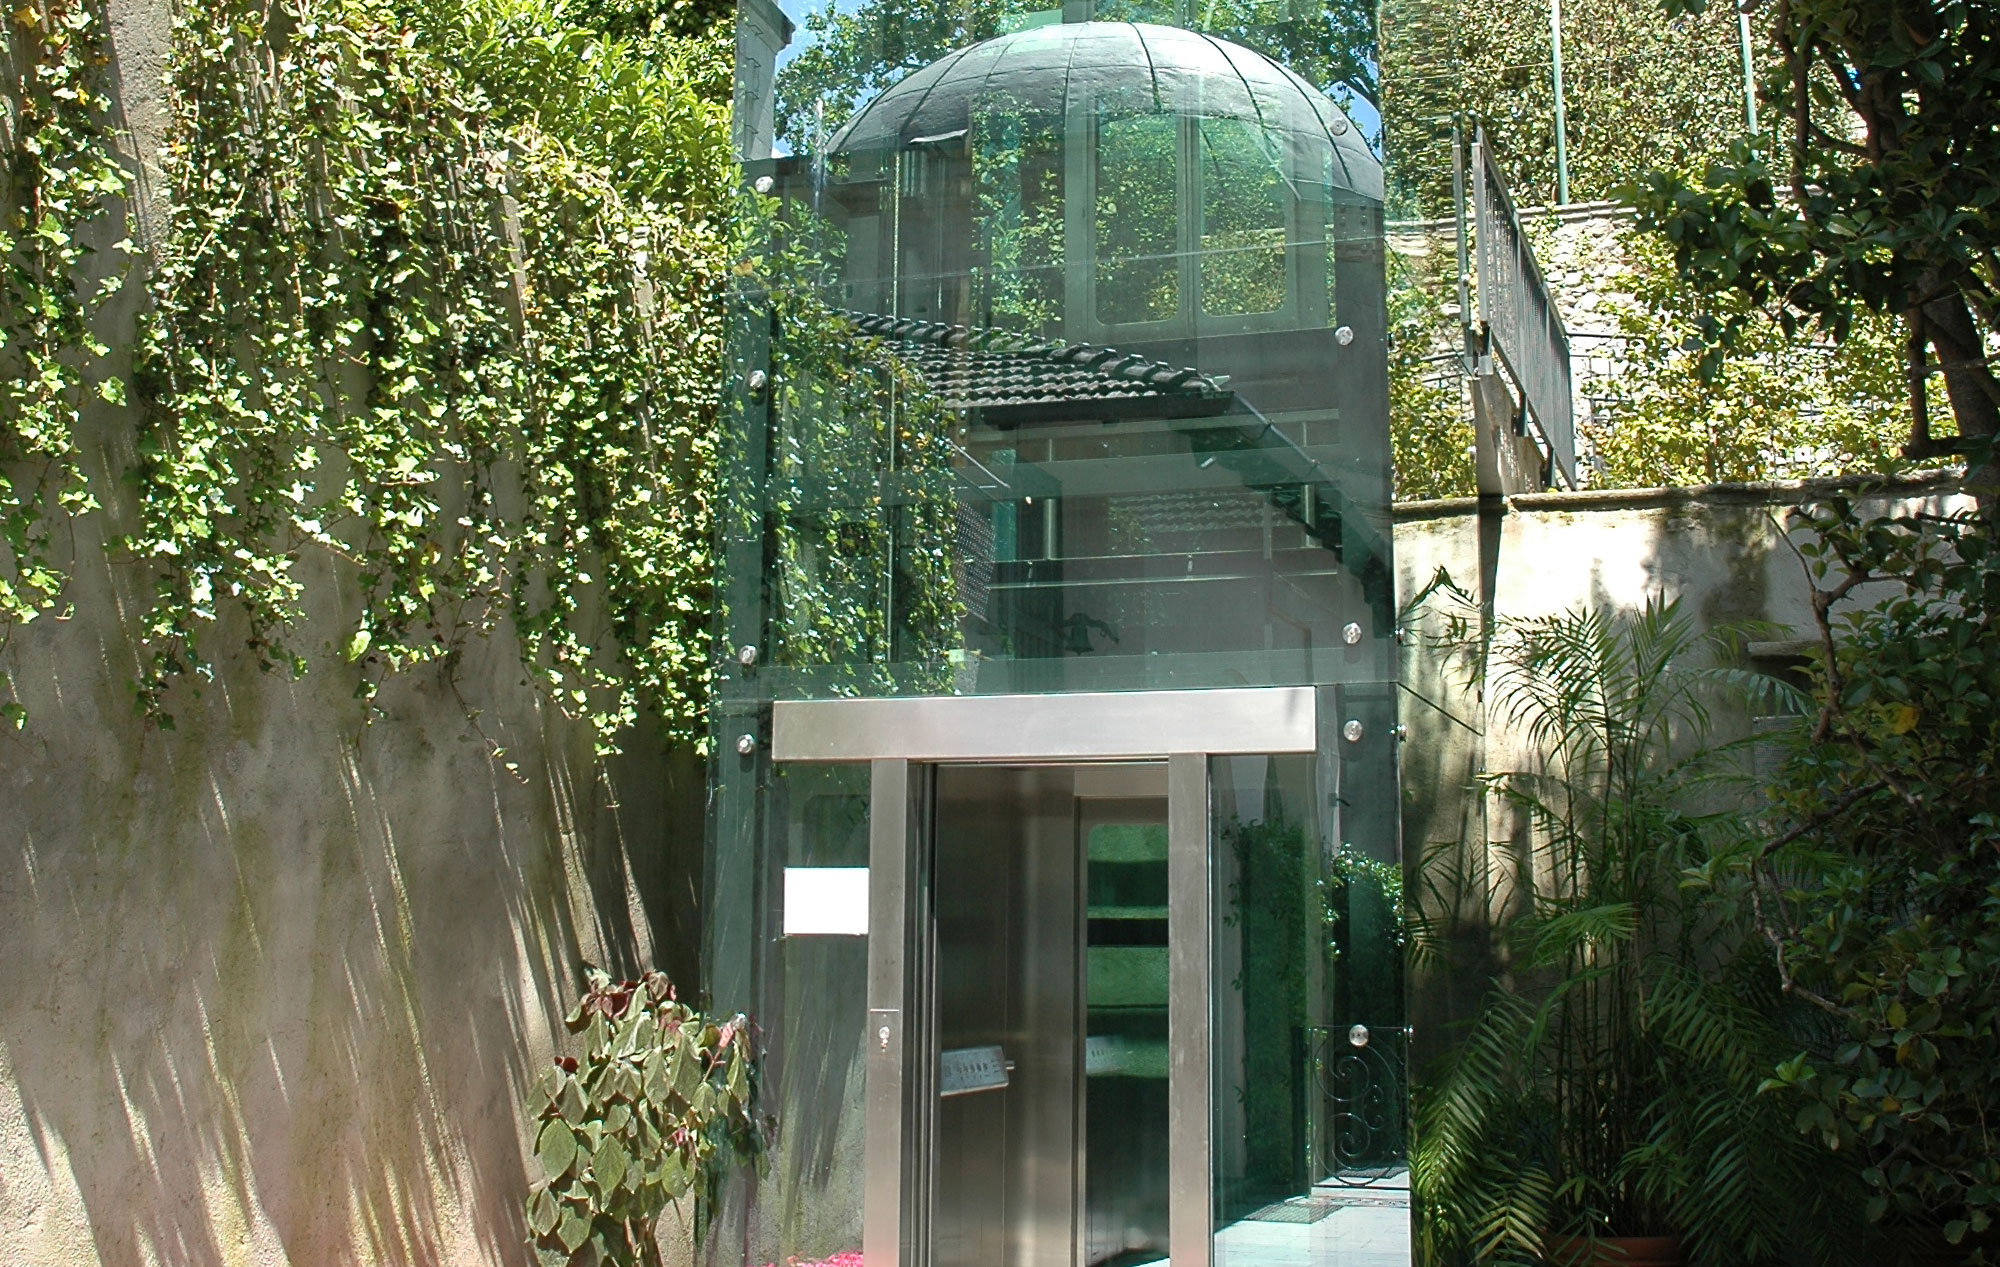 Inclined Panoramic Lift at Villa Carlotta, on Como Lake